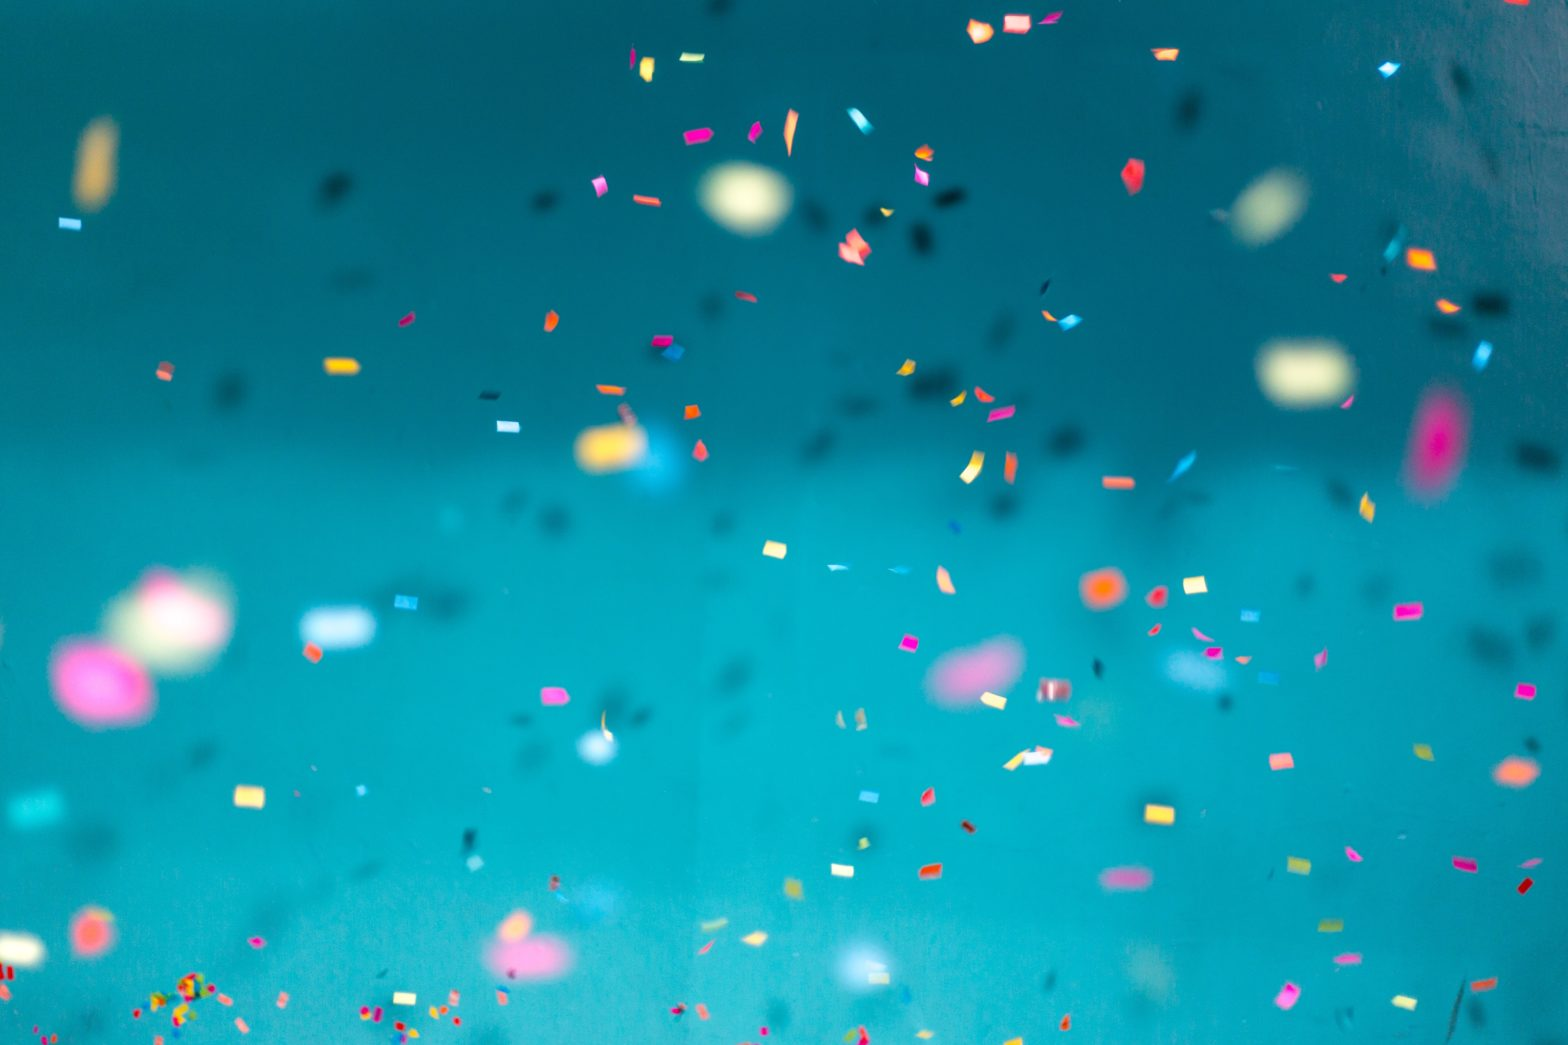 A blue background with multicoloured confetti falling in front of it